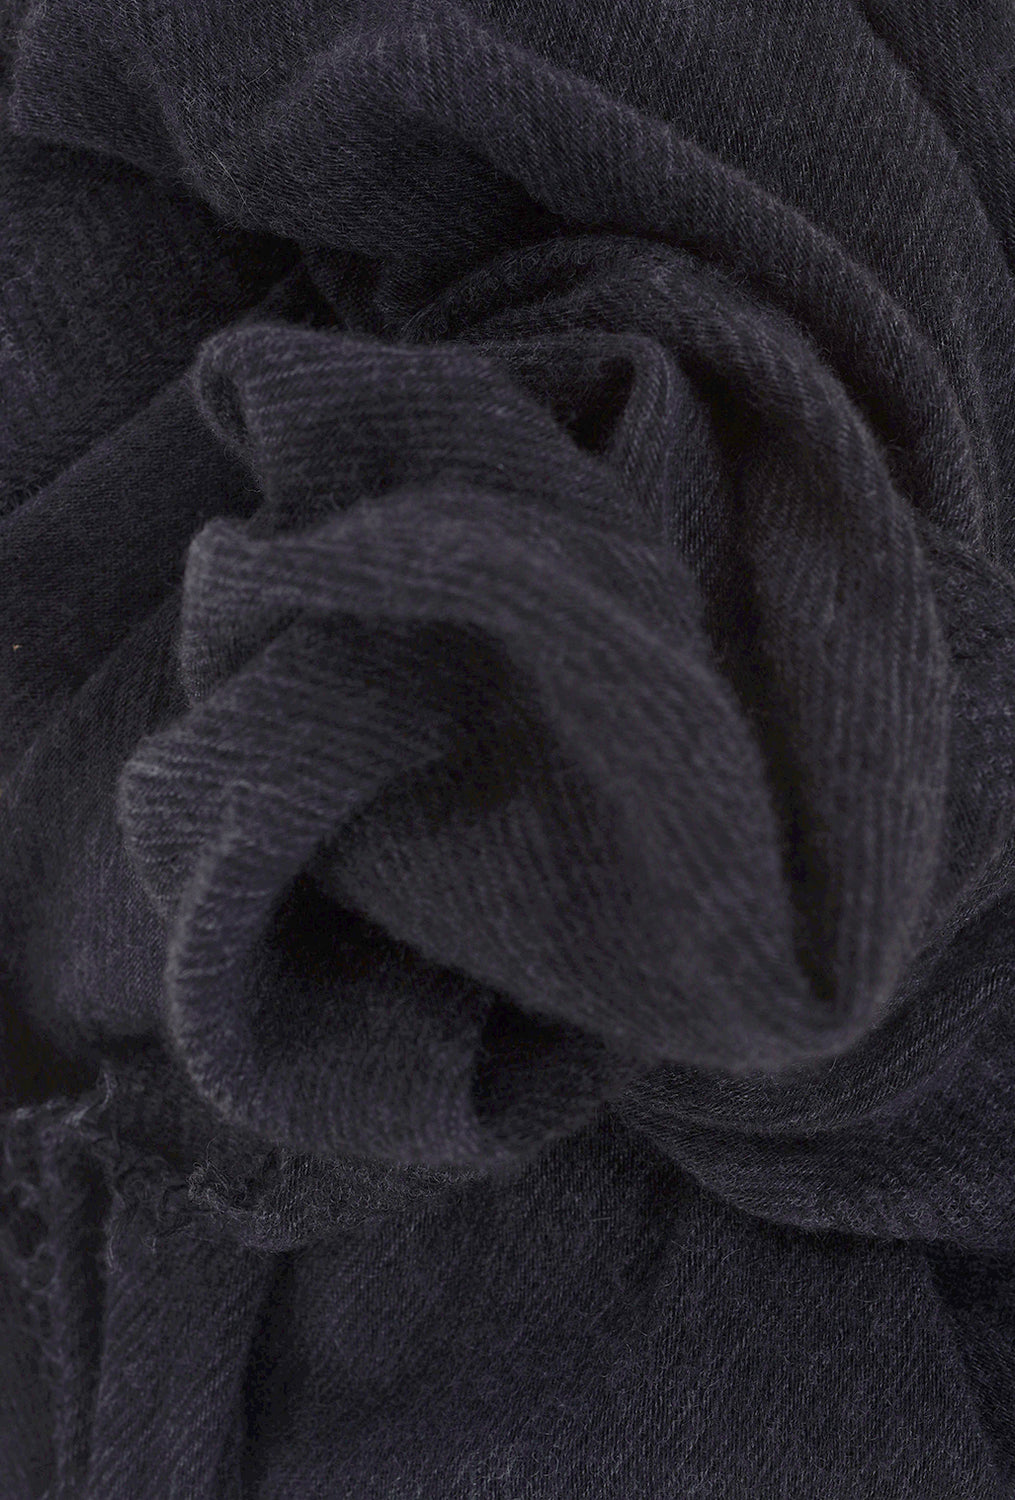 Grisal Cashmere 'Love' Scarf, Black/Charcoal Microstripes One Size Black